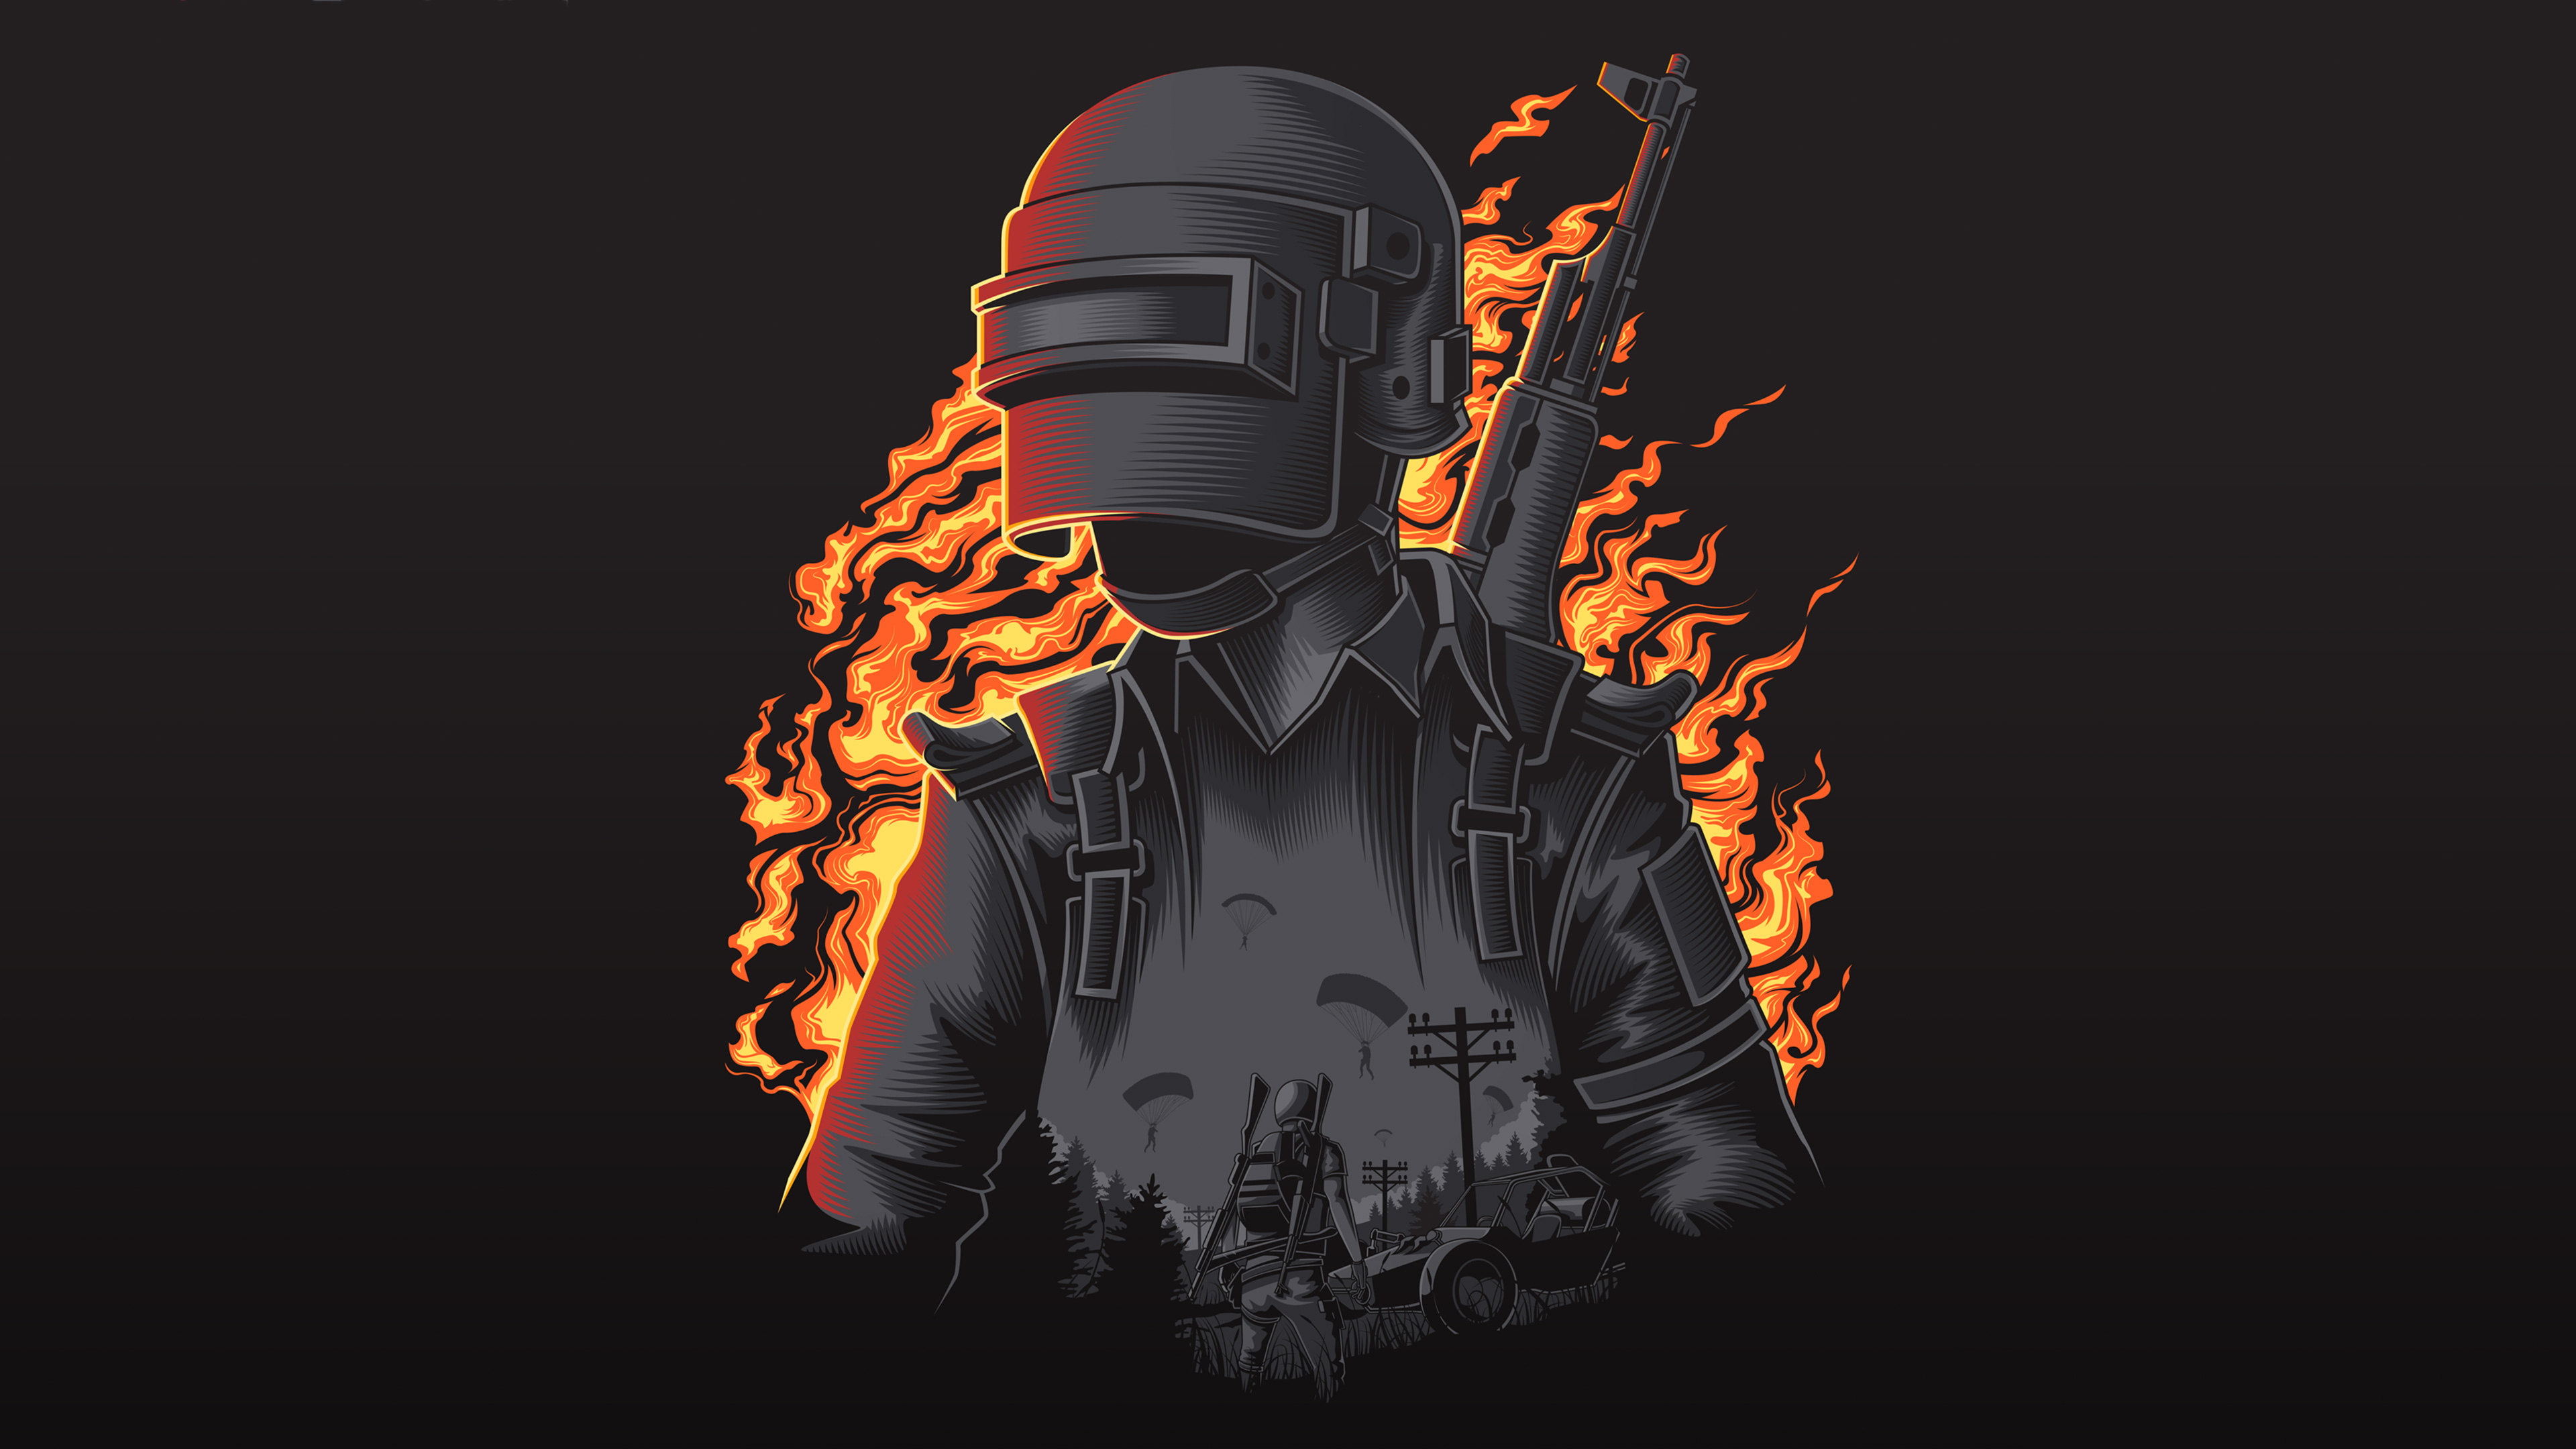 1366x768 Pubg Girl 1366x768 Resolution Hd 4k Wallpapers: 2560x1080 Pubg Illustration 4k 2560x1080 Resolution HD 4k